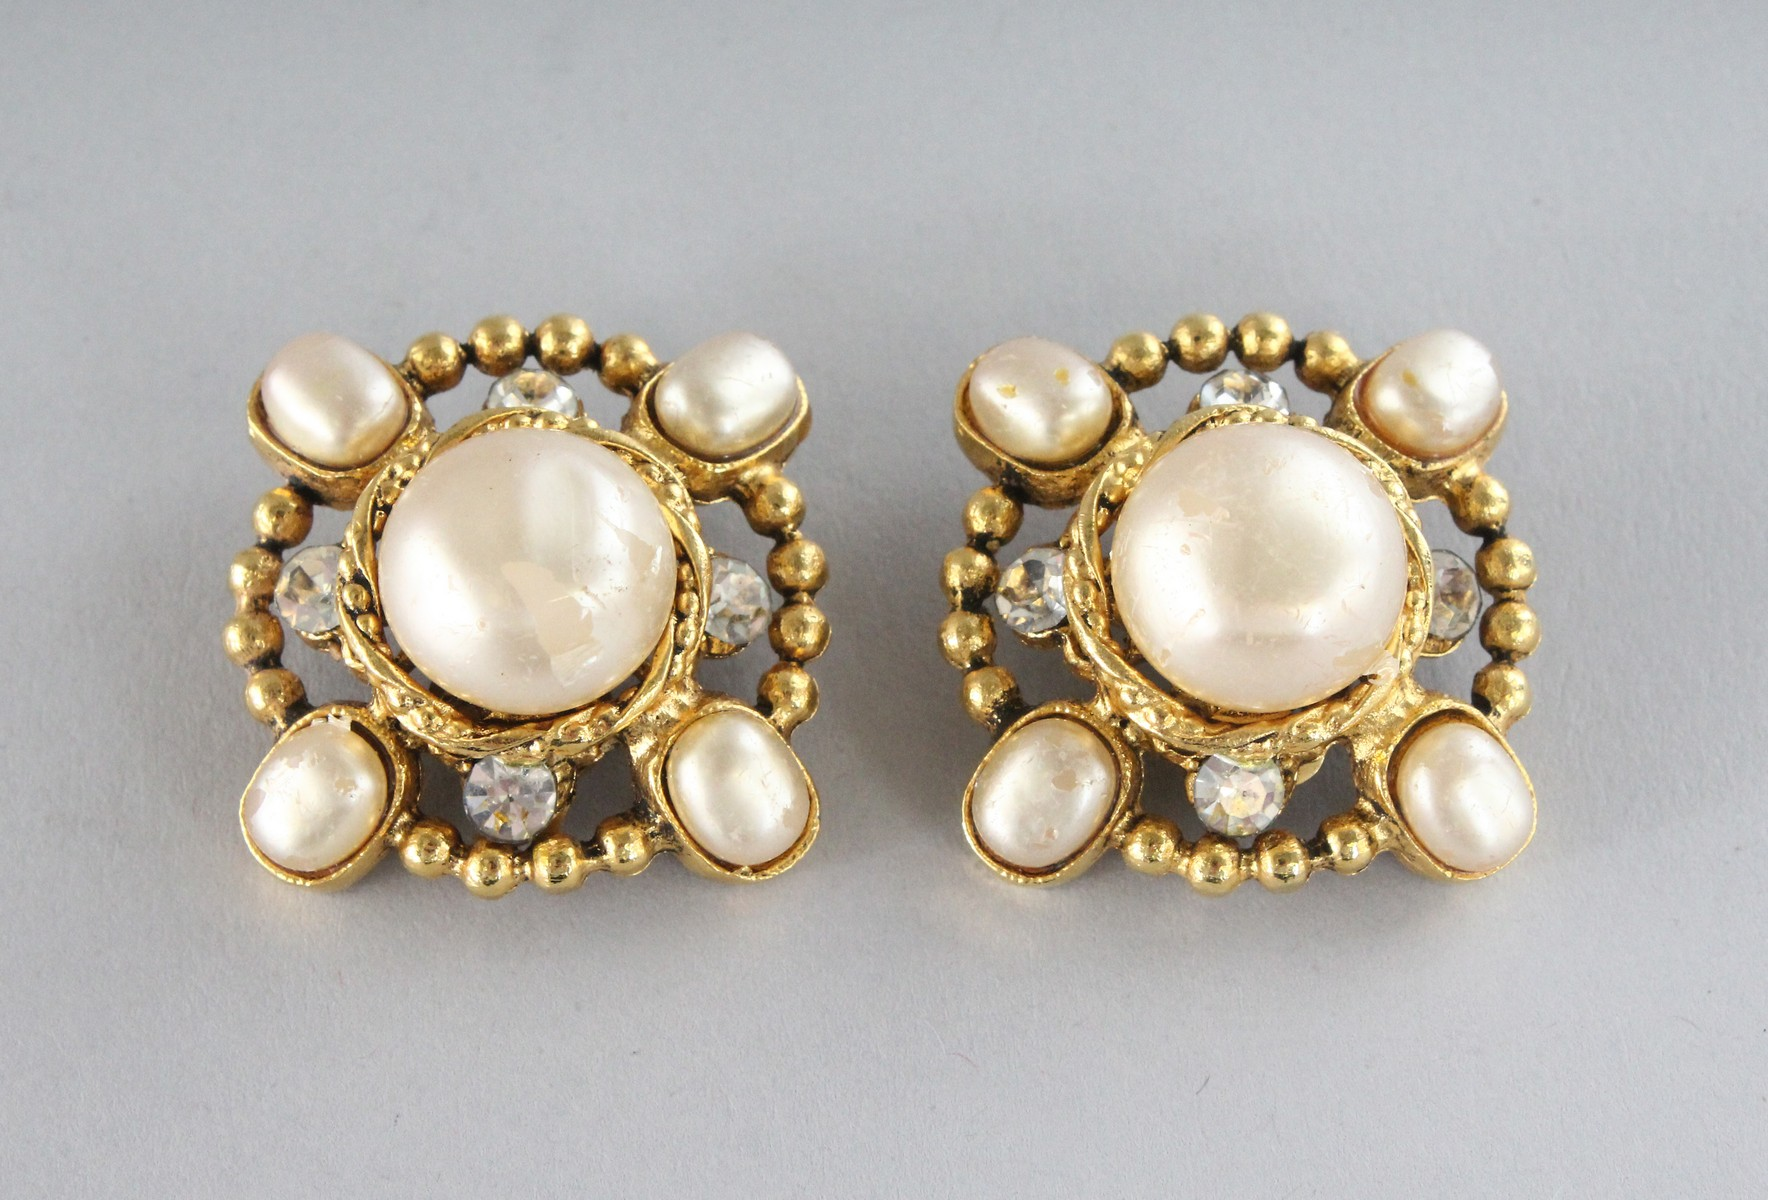 A GOOD PAIR OF CHANEL PEARL EAR CLIPS. - Image 2 of 4